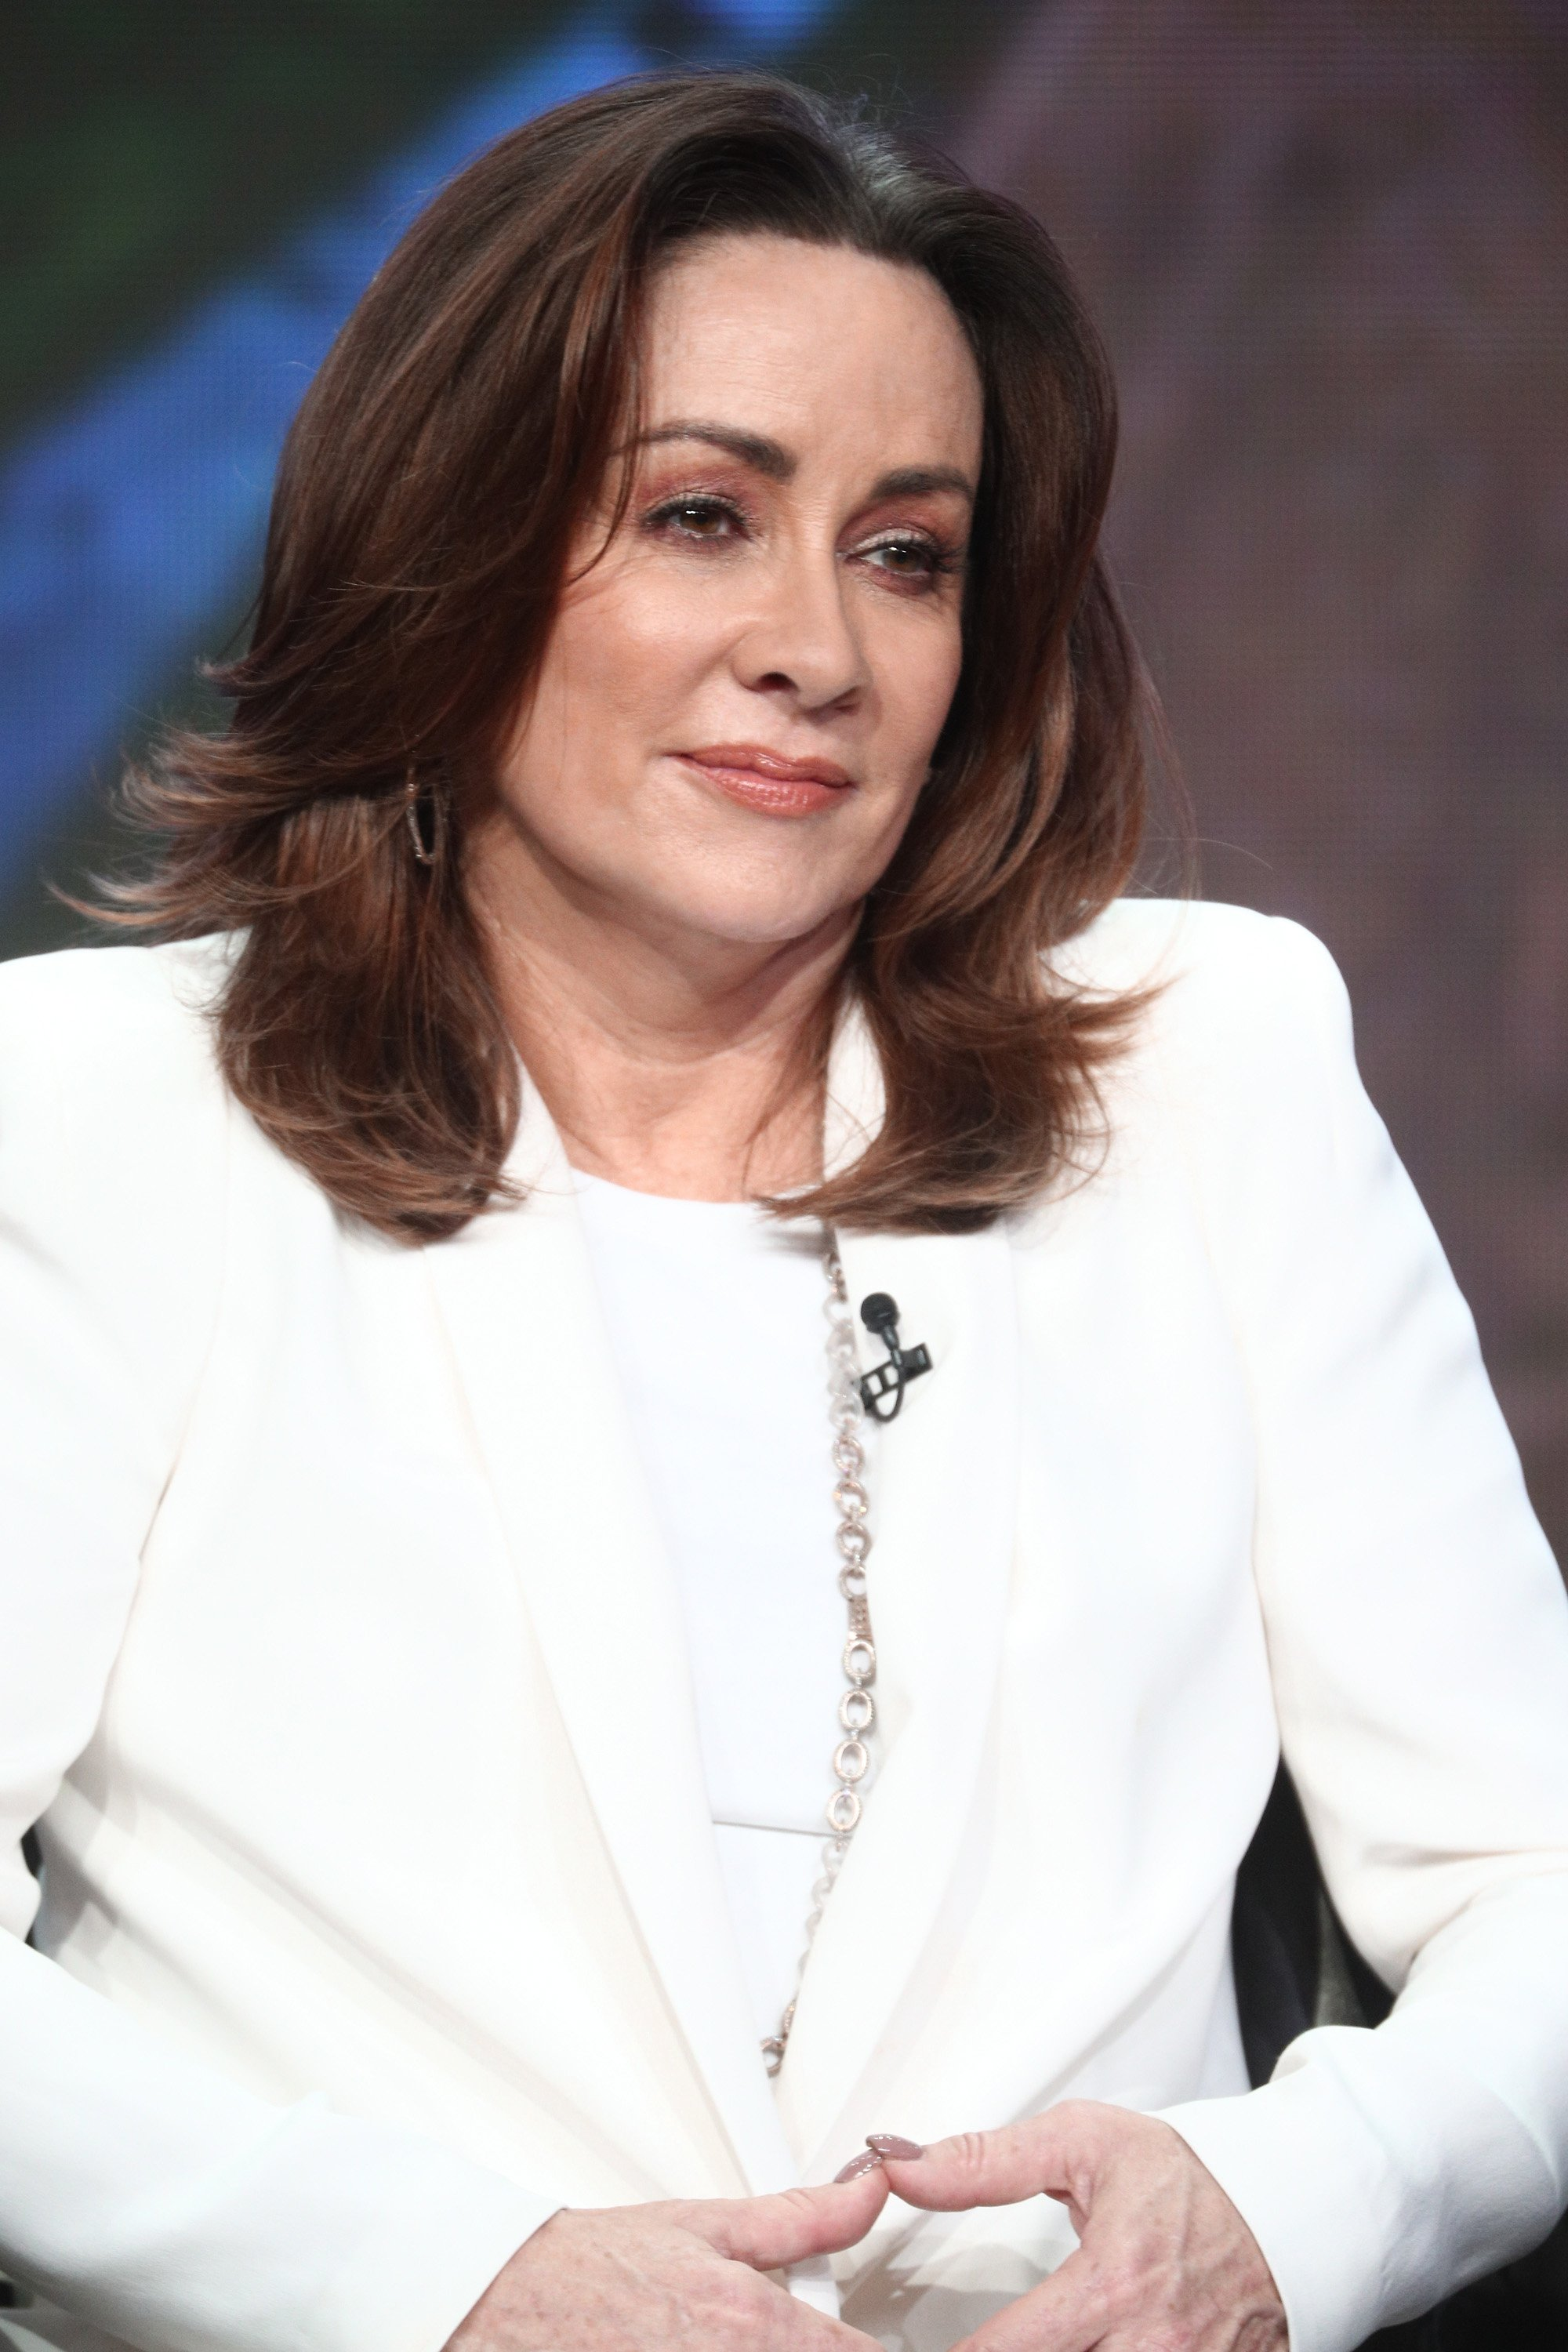 Patricia Heaton  during the Disney/ABC Television Group portion of the 2017 Summer Television Critics Association Press Tour. | Source: Getty Images